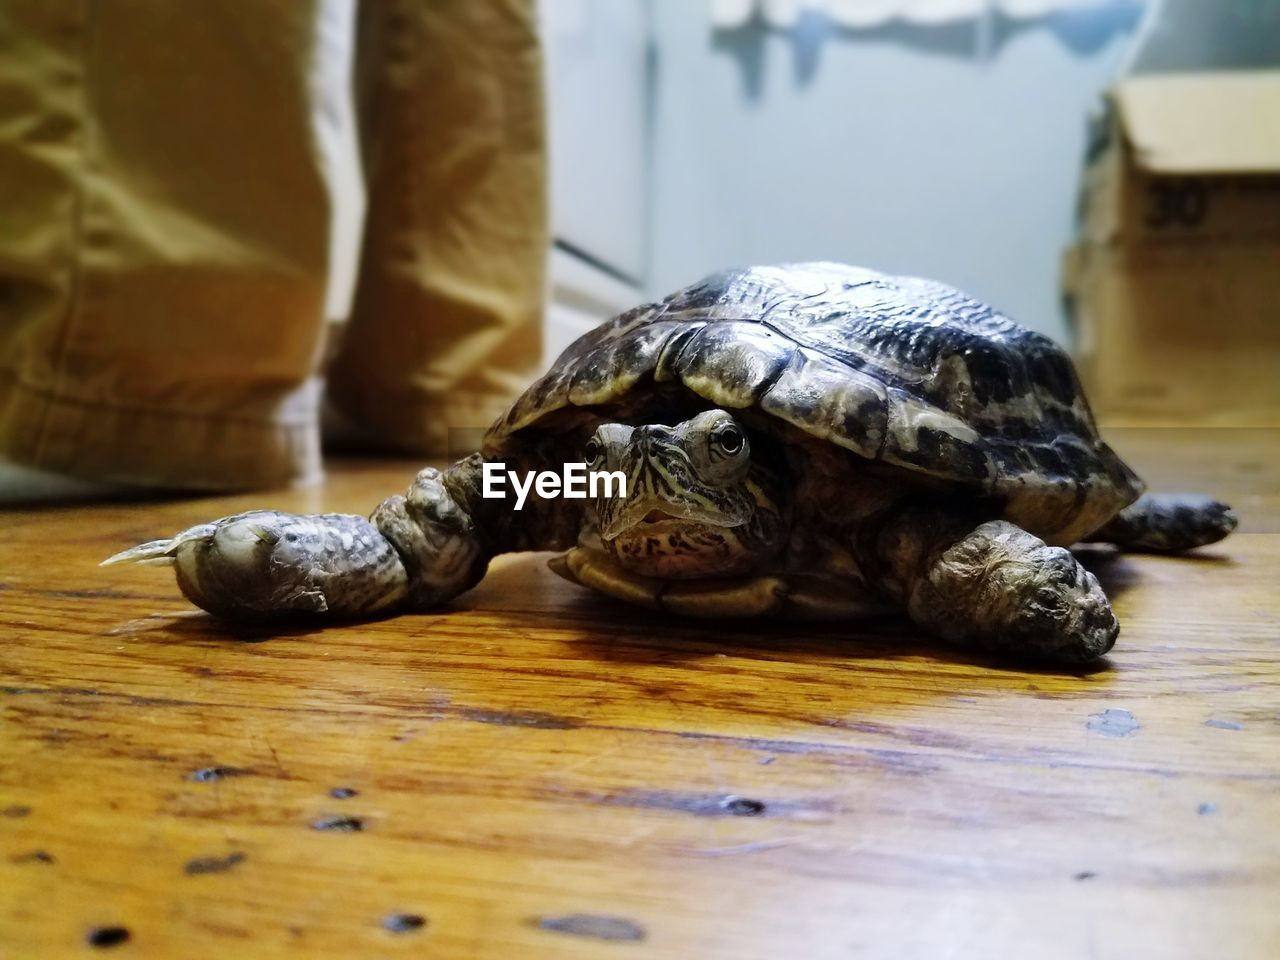 tortoise, reptile, animal shell, animal themes, one animal, tortoise shell, turtle, indoors, animals in the wild, table, day, animal wildlife, pets, no people, close-up